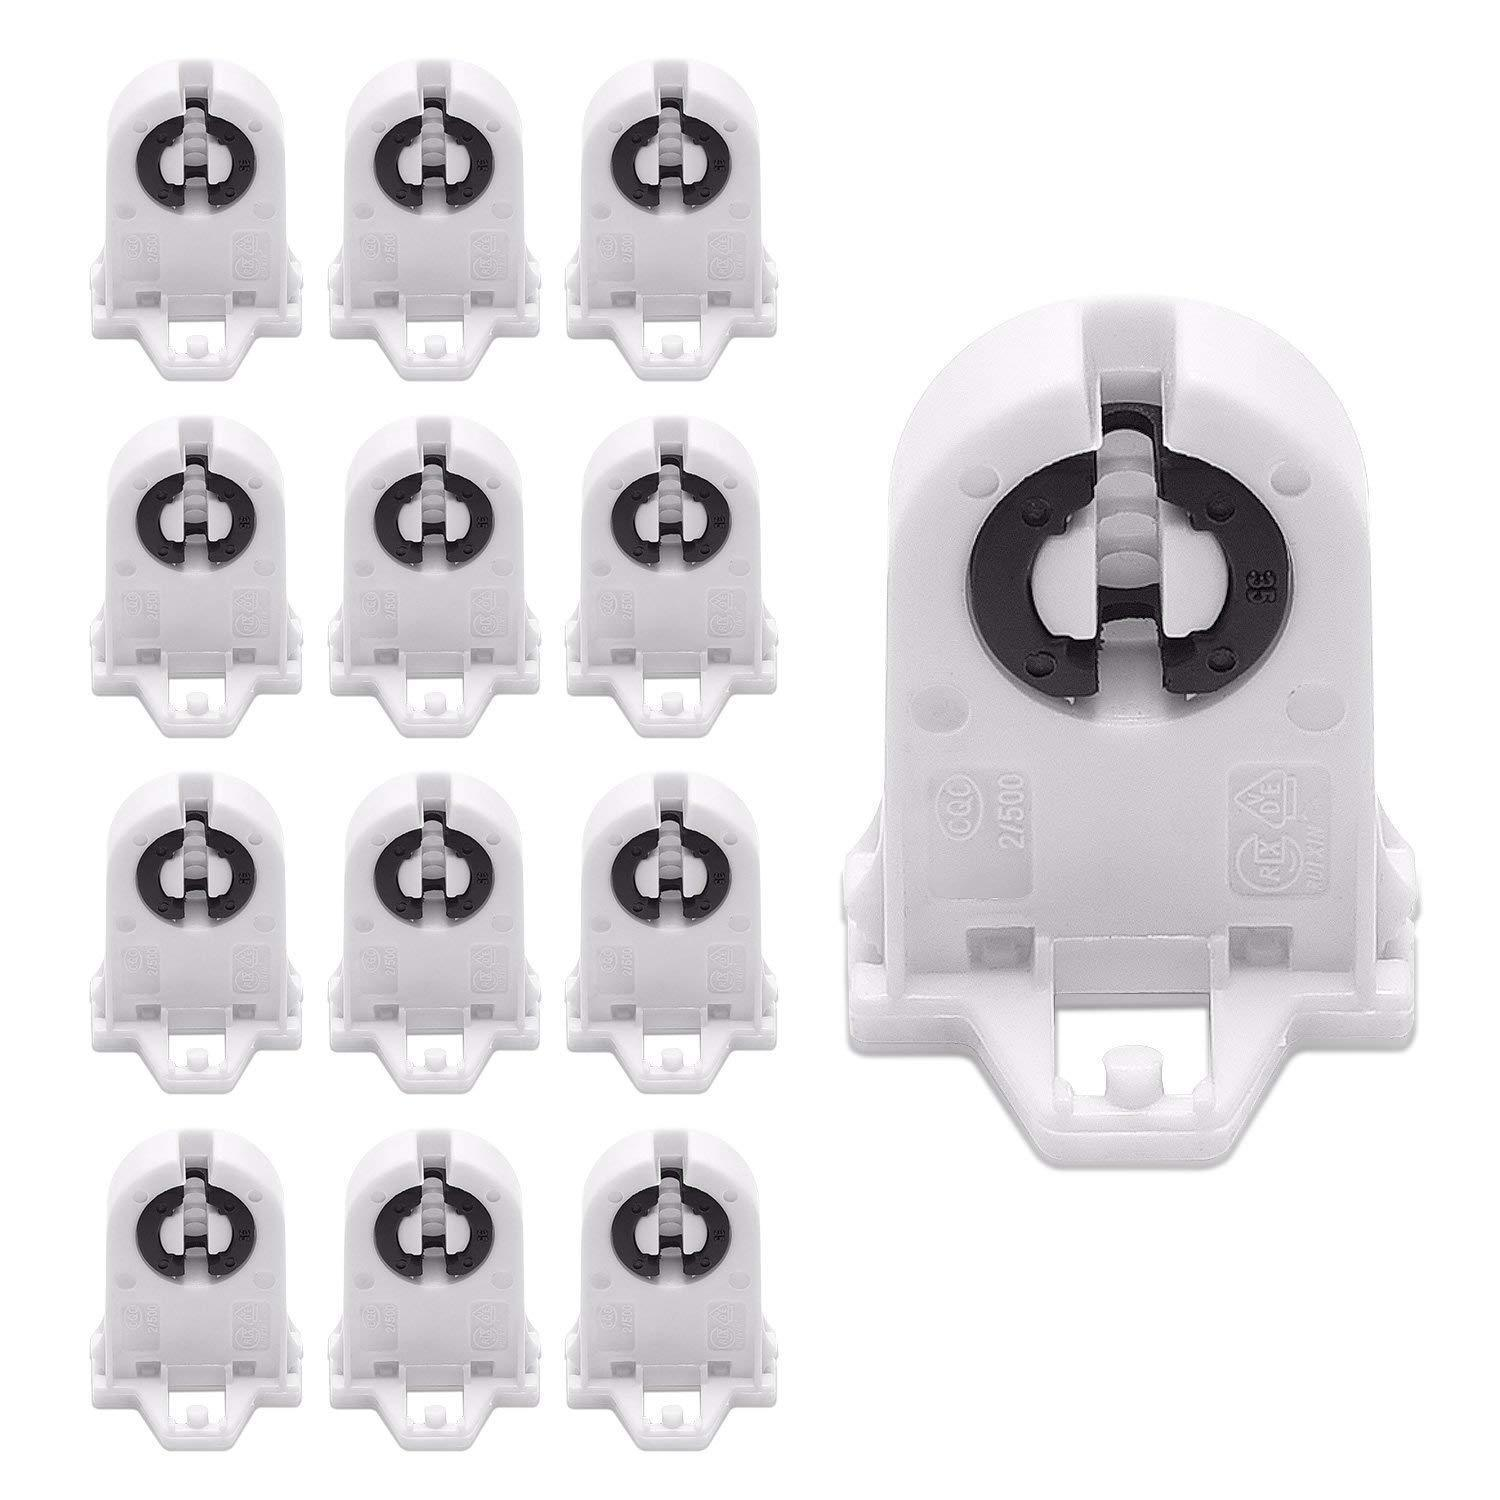 hight resolution of lustreon non shunted 600w t8 lamp holder socket for led fluorescent tube replace for sale ebay